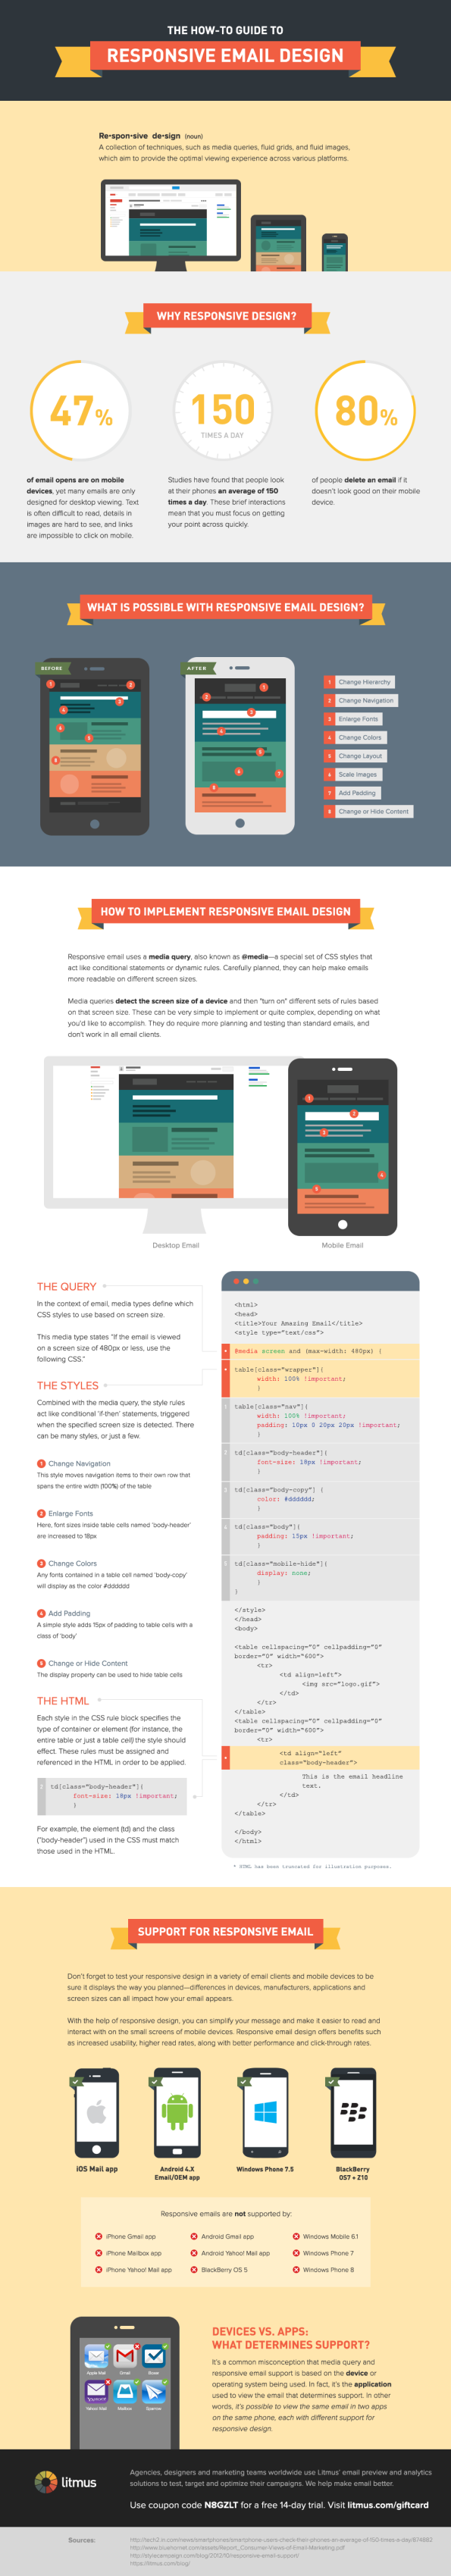 how-to-responsive-email-design-infographic 3